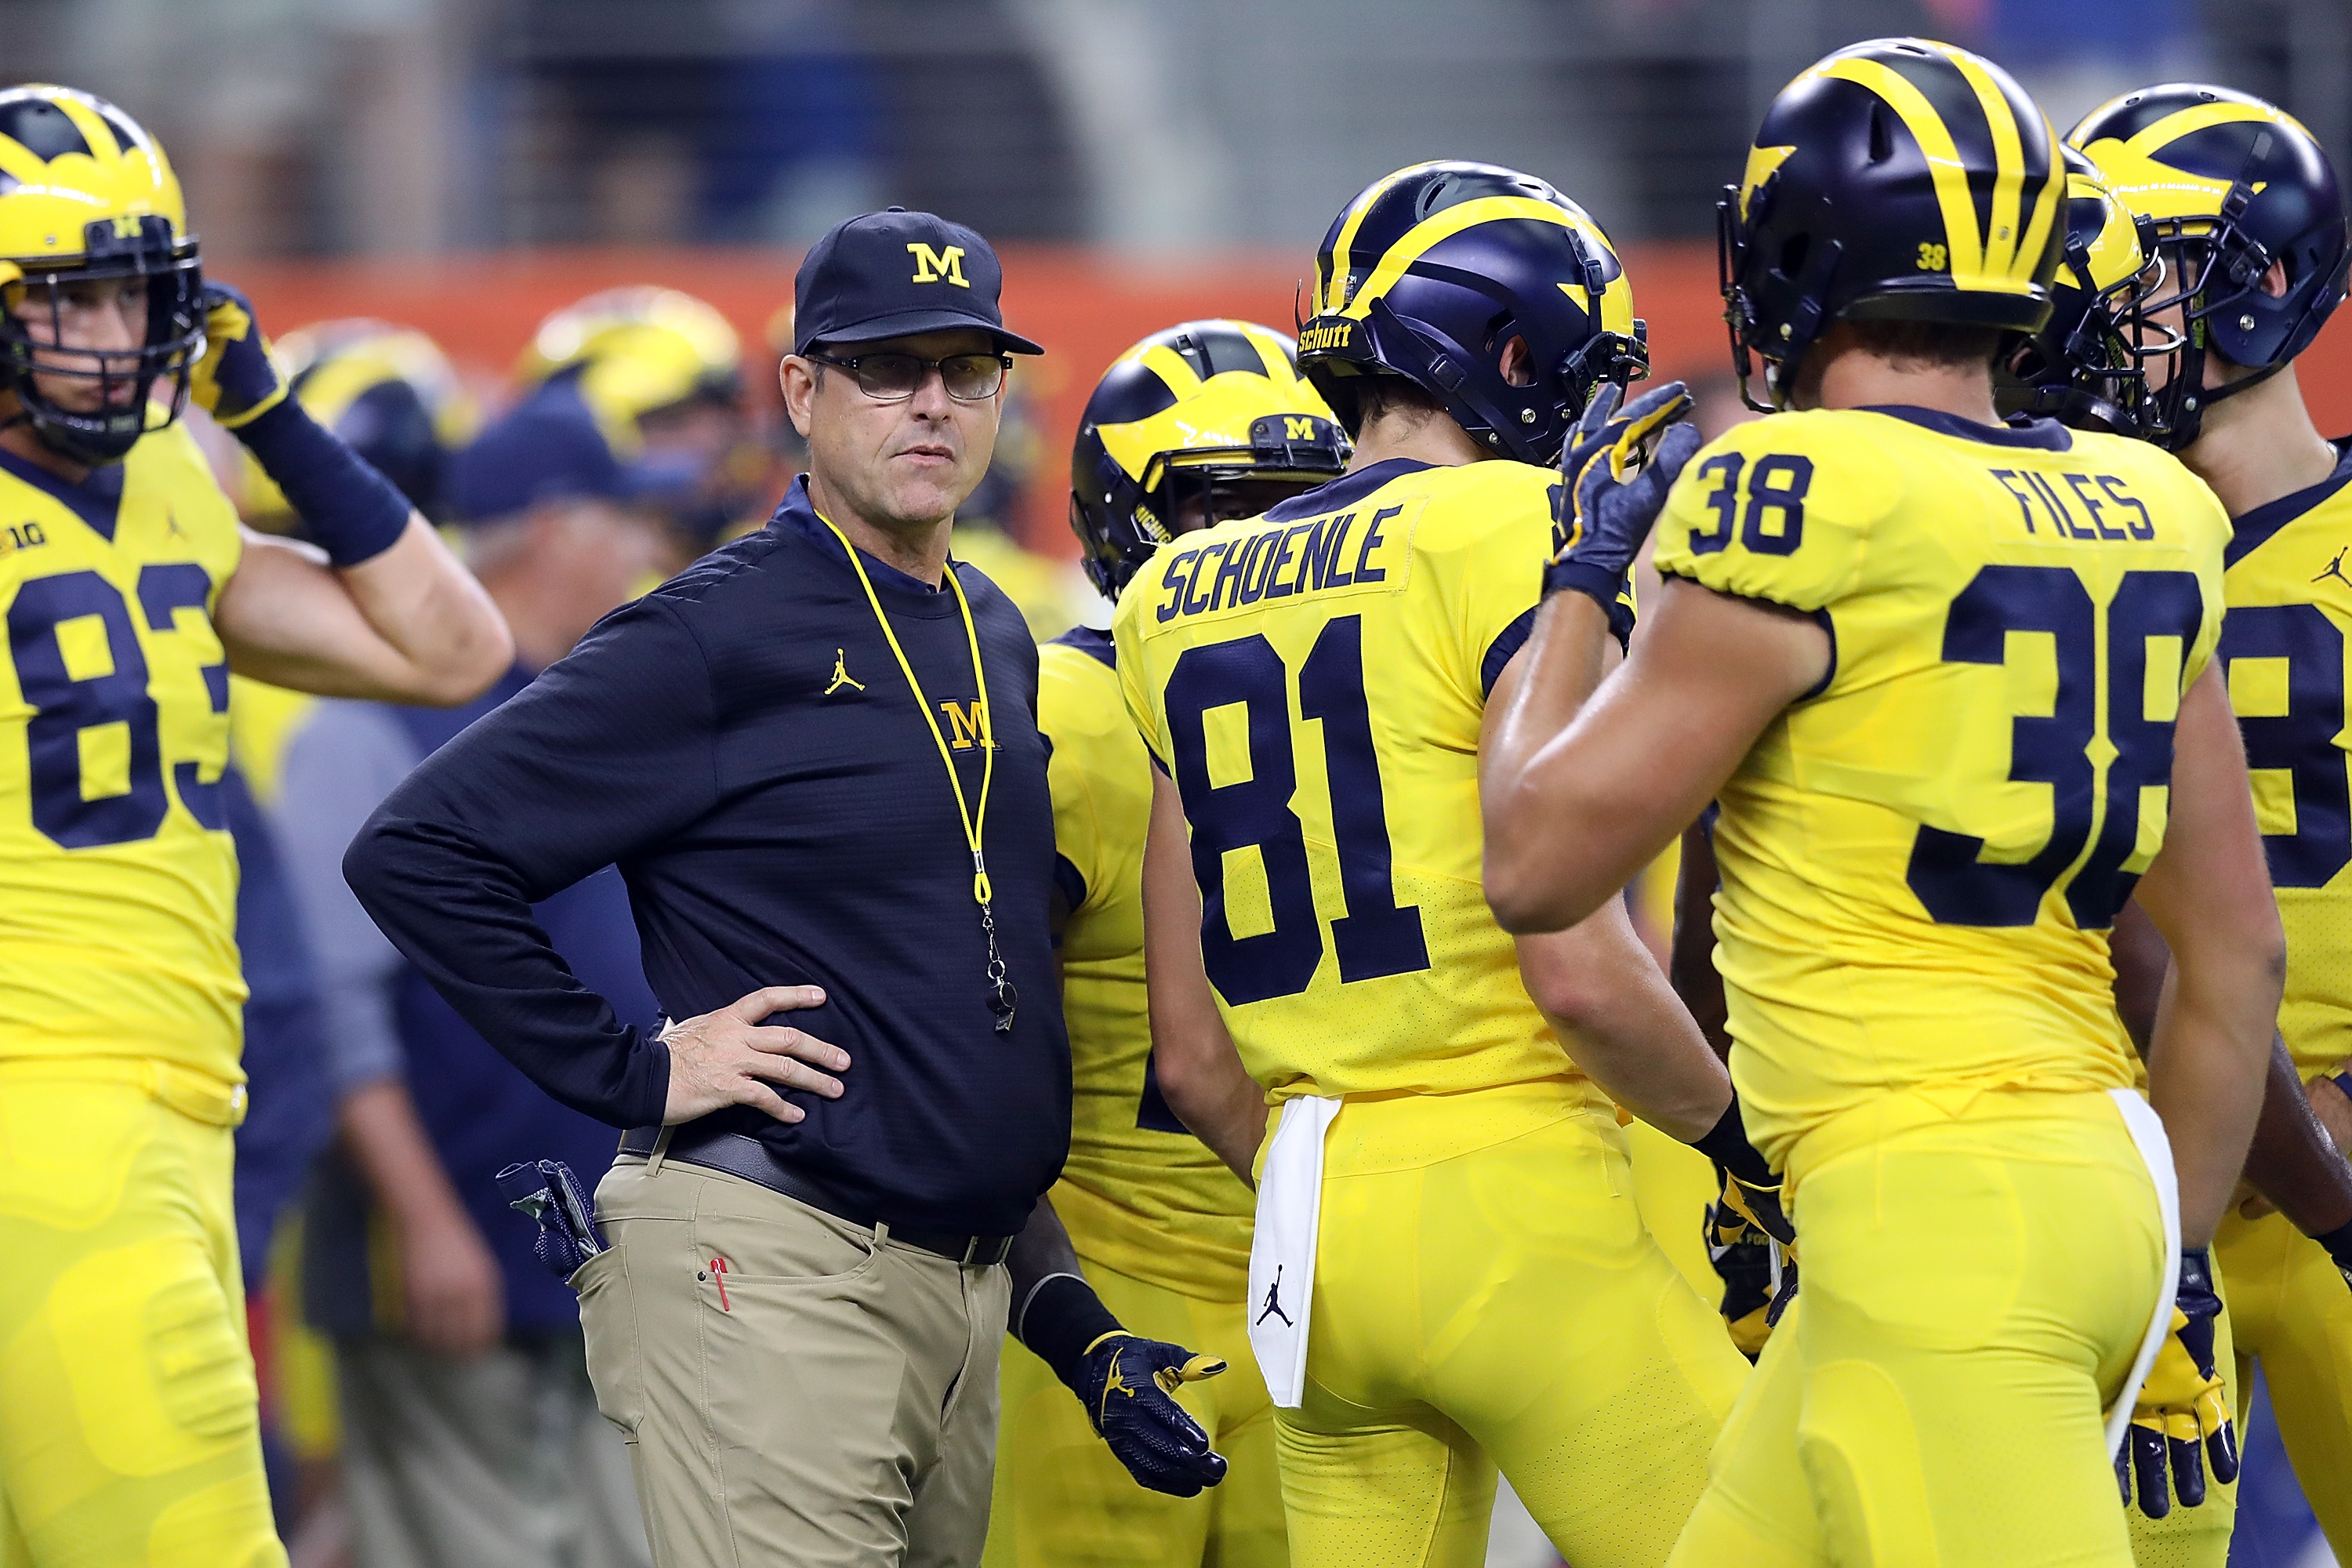 Air Force Falcons vs Michigan Wolverines Live Stream: Watch College Football Online